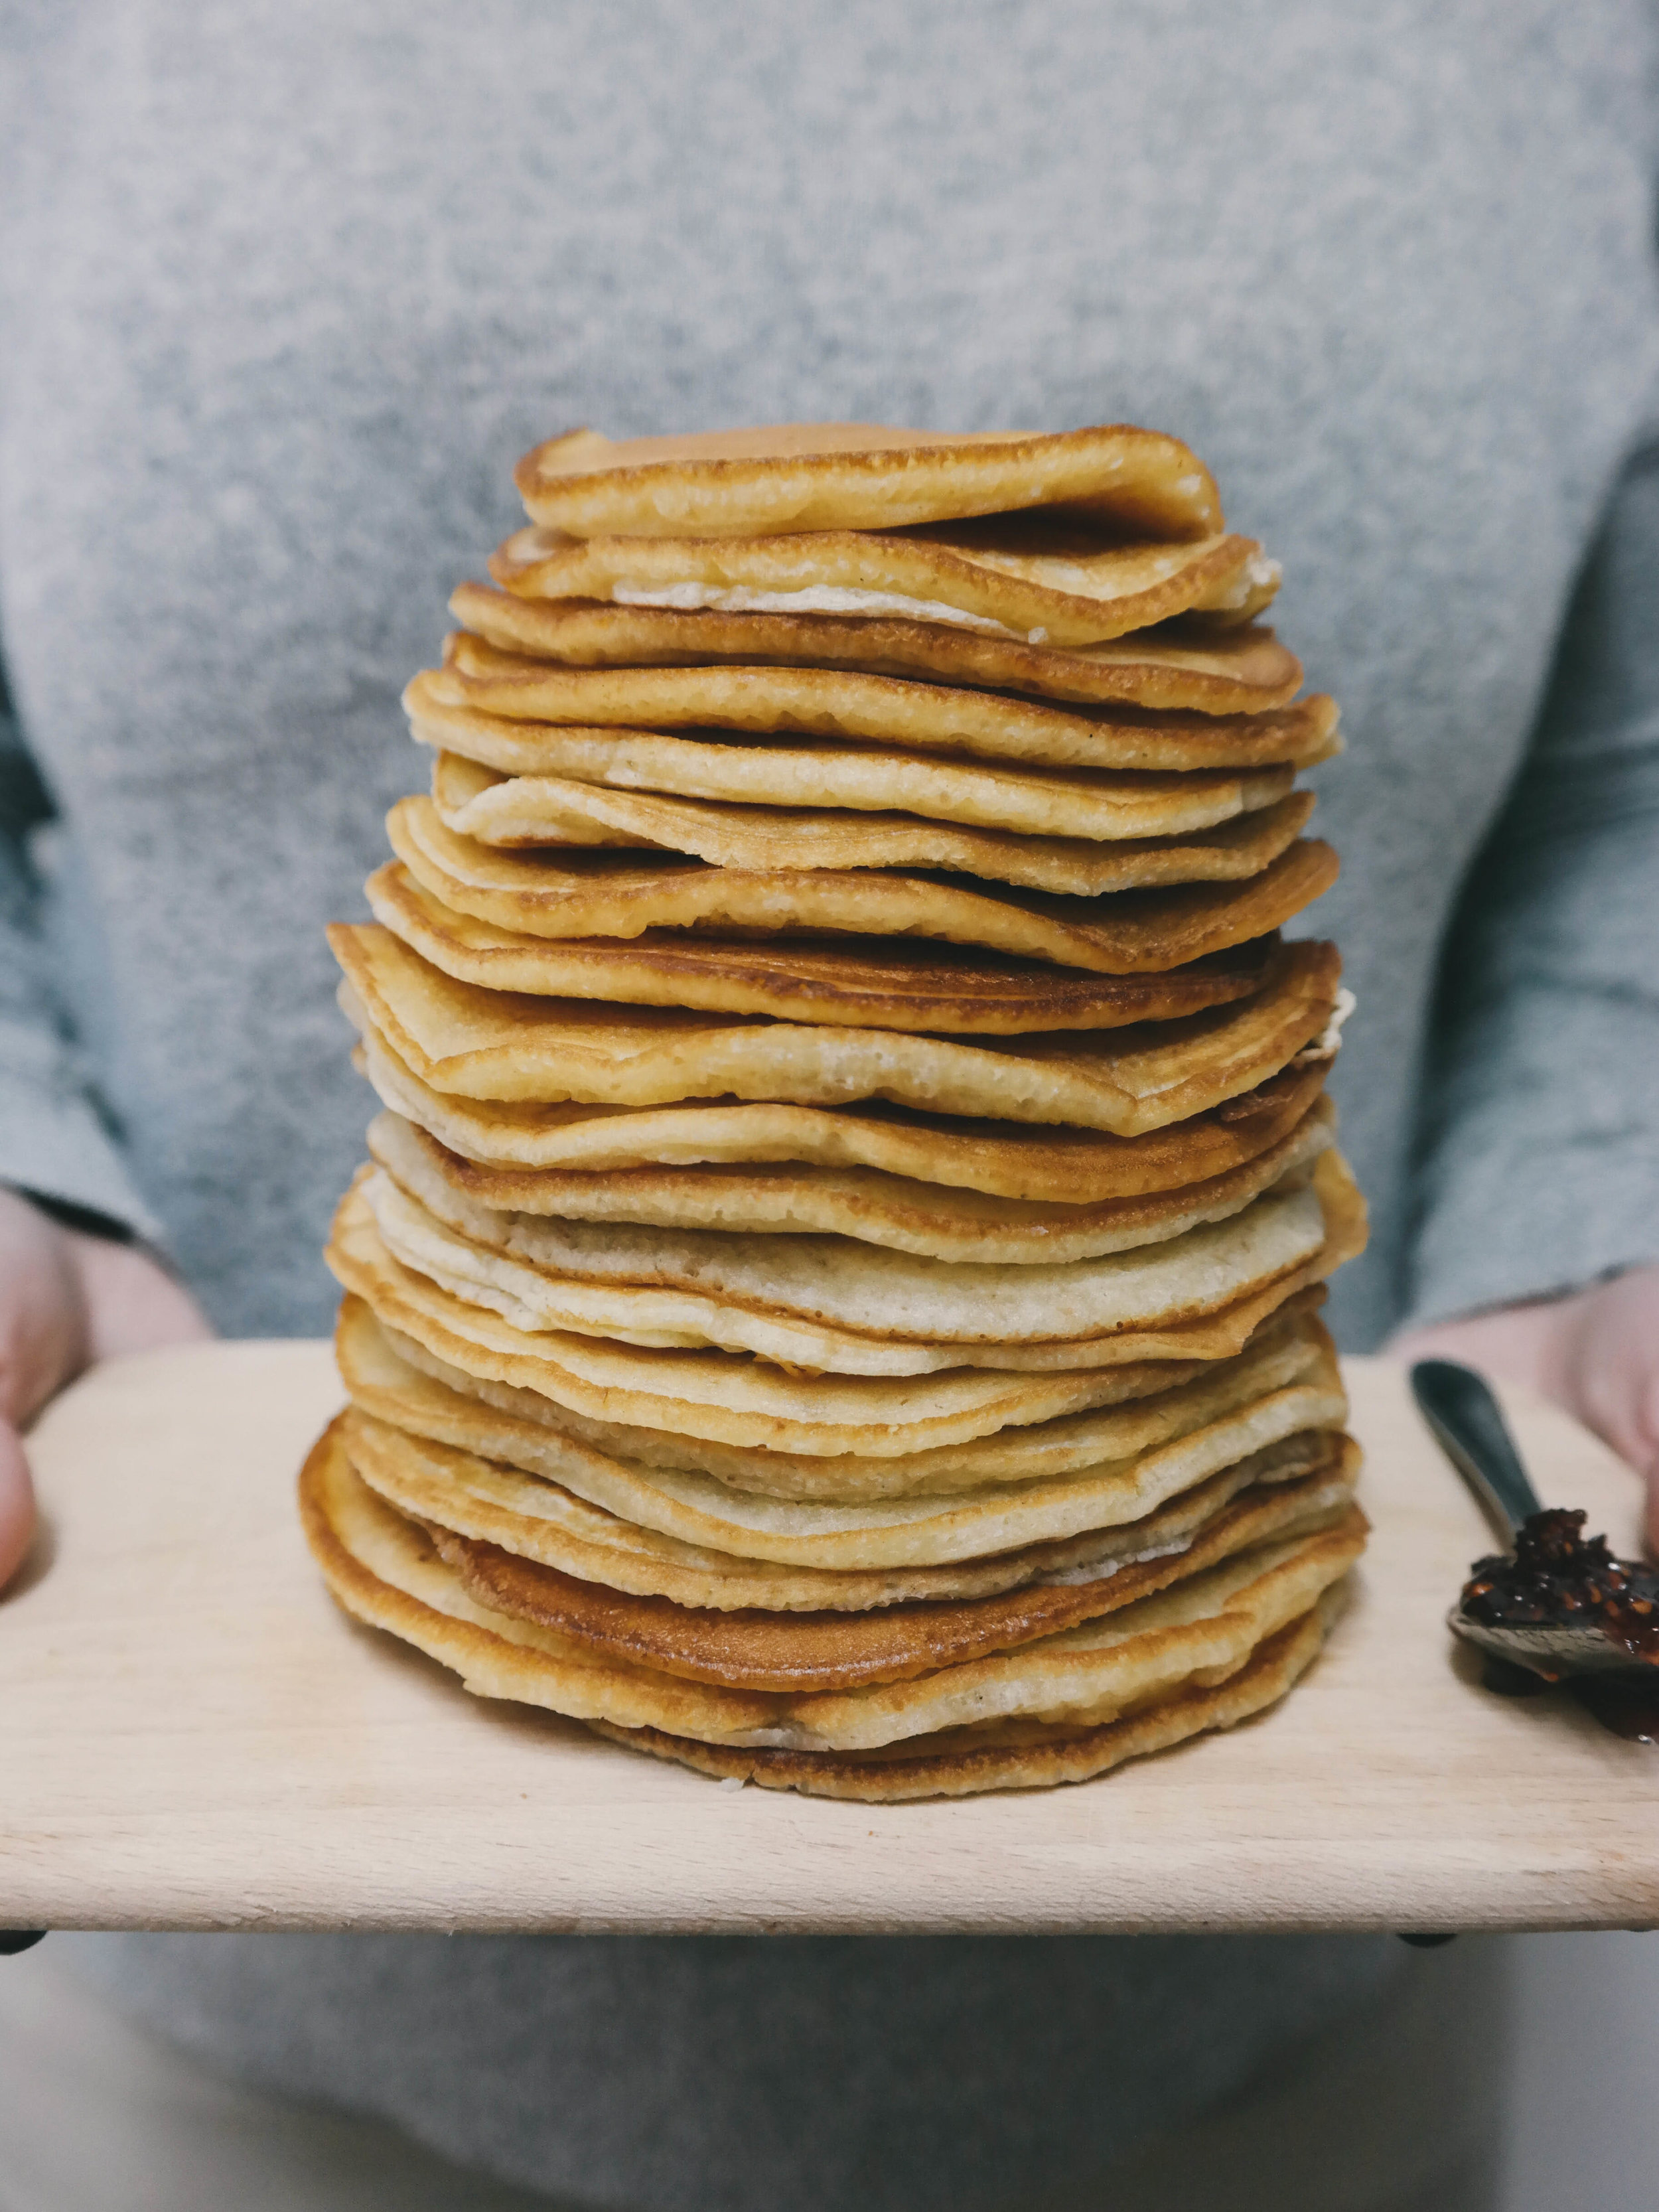 Happy Flipping! - The Classic or The Alternative, which pancake are you?